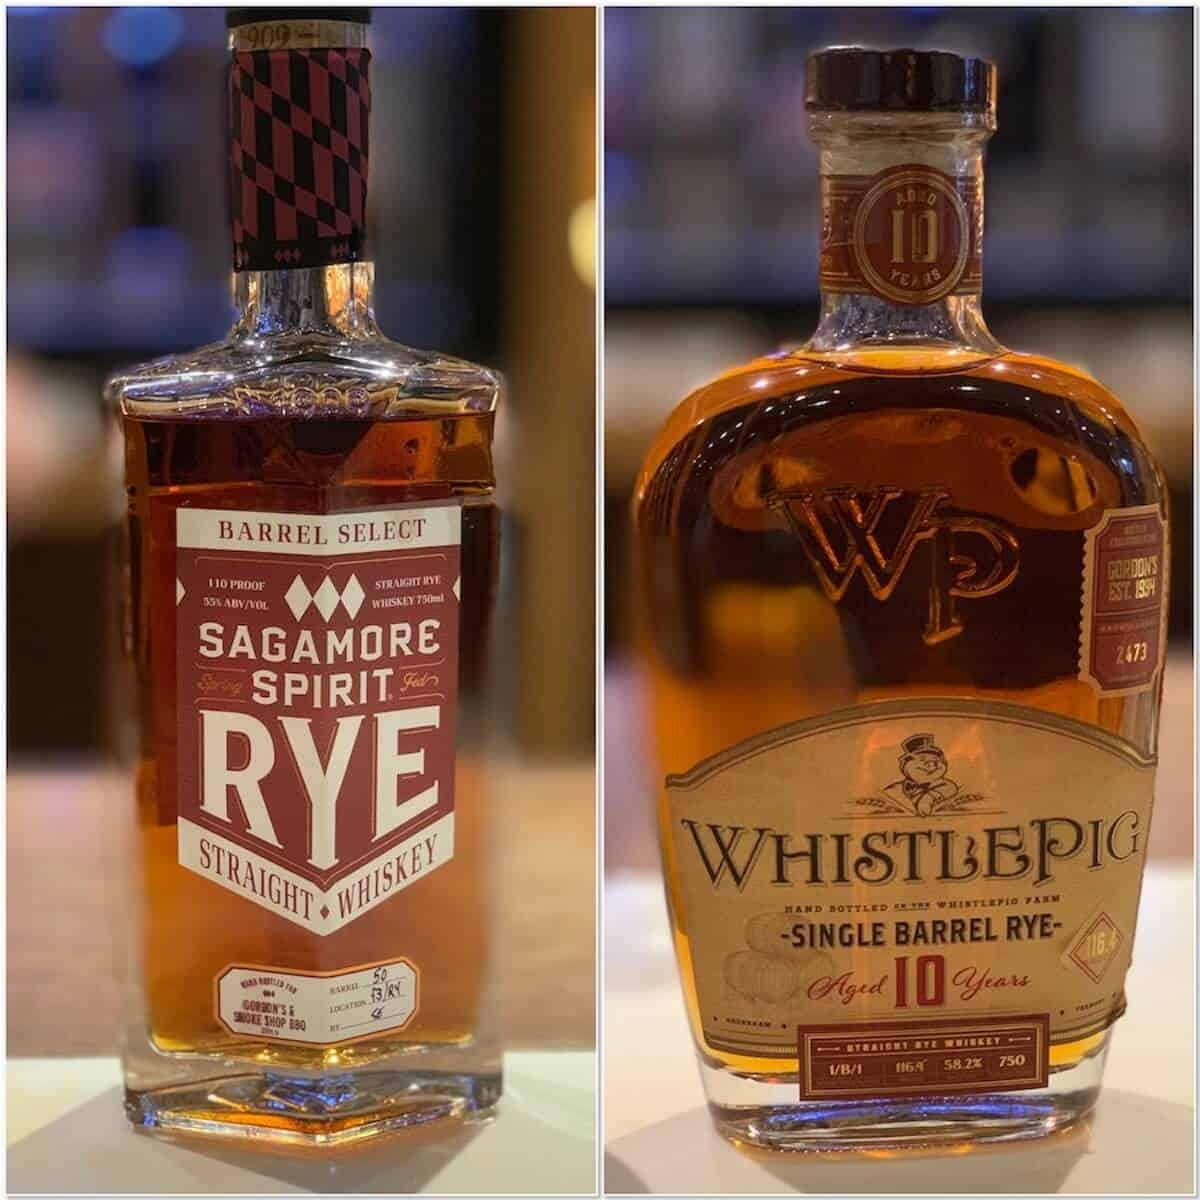 Gordon's Single Barrel Selections, Sagamore Rye, WhistlePig